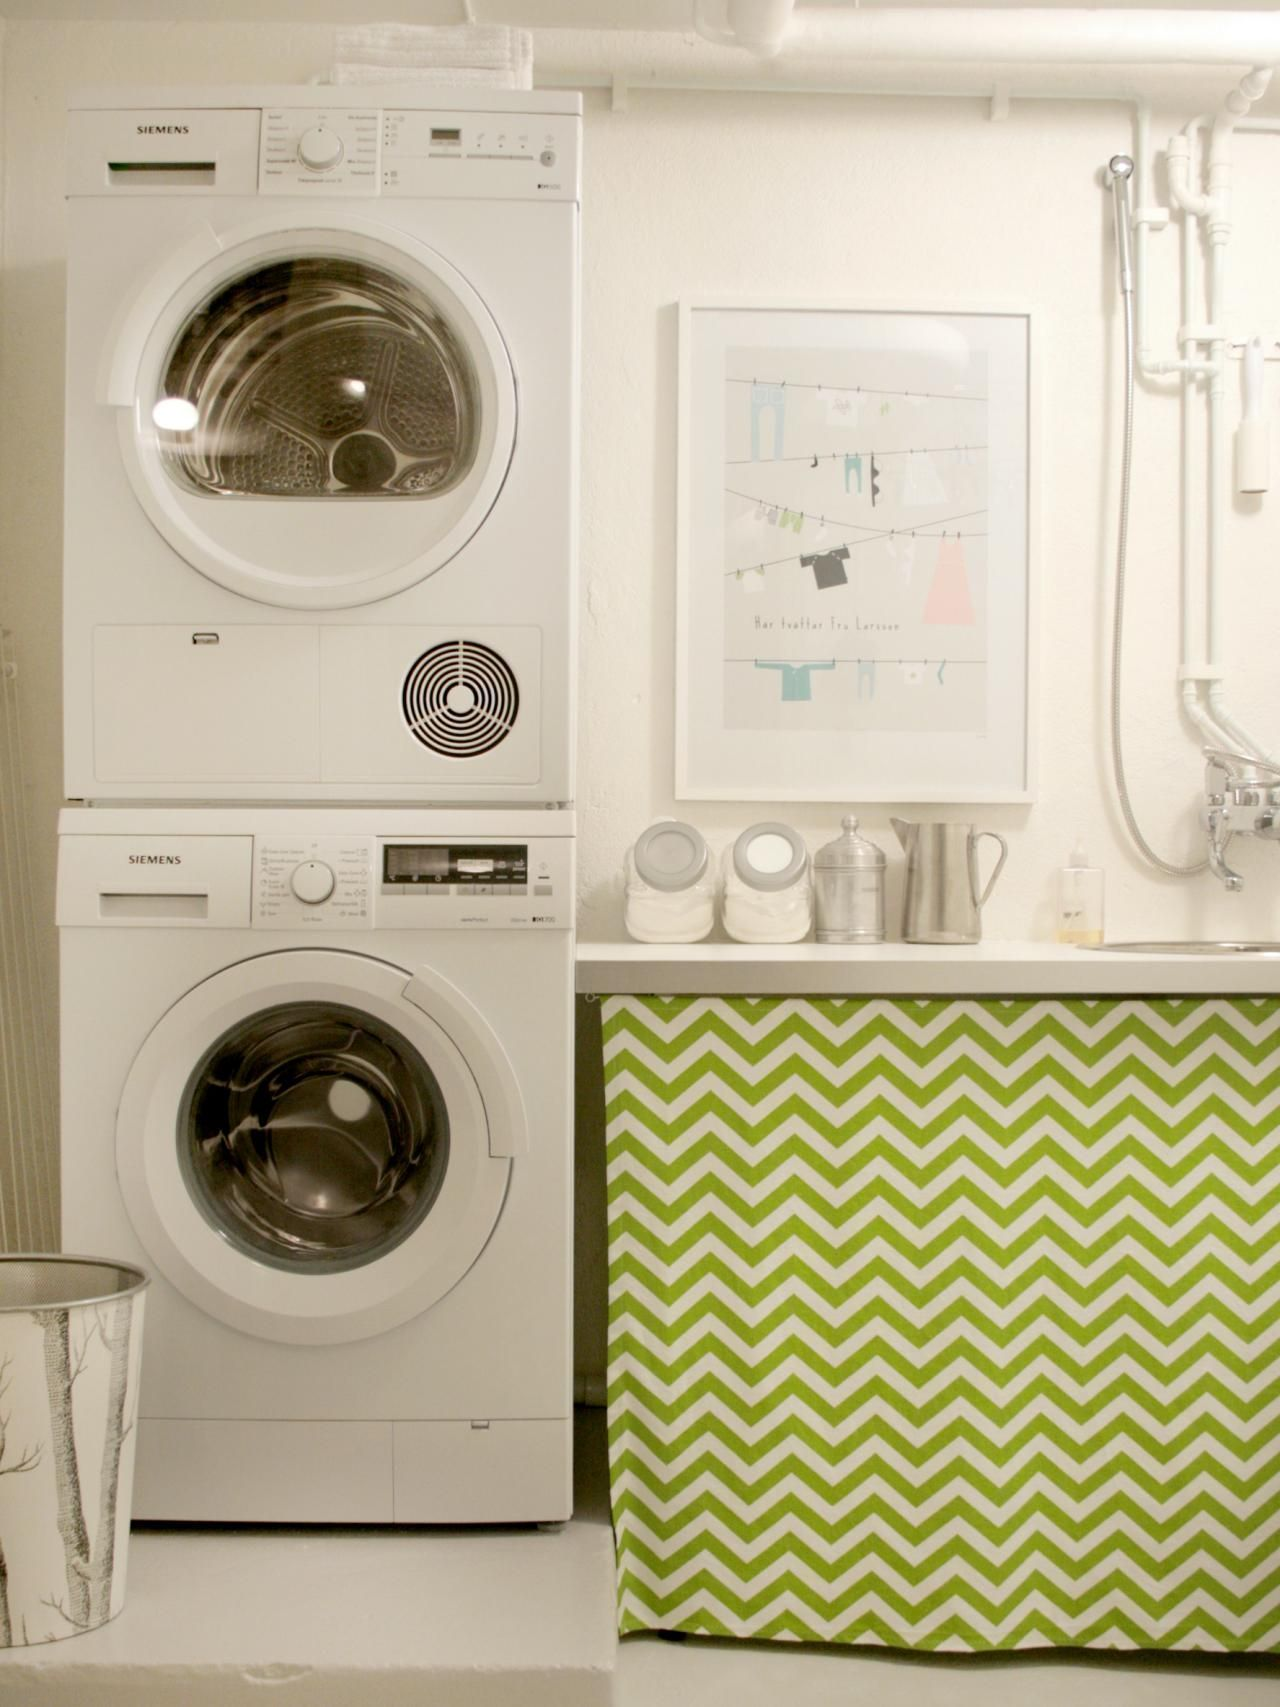 Decor And Storage Tips For Basement Laundry Rooms - Home